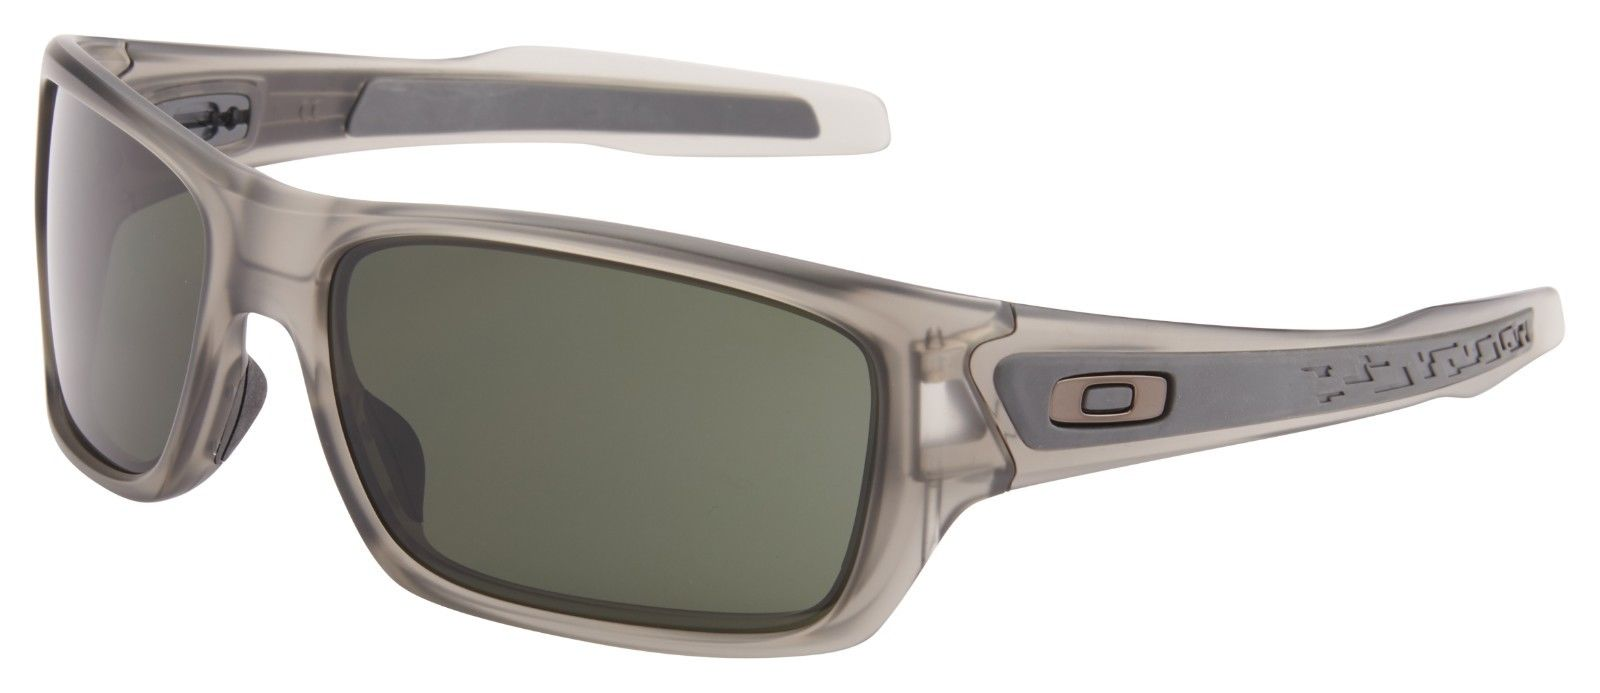 3ef05e418c Oakley Turbine Sunglasses